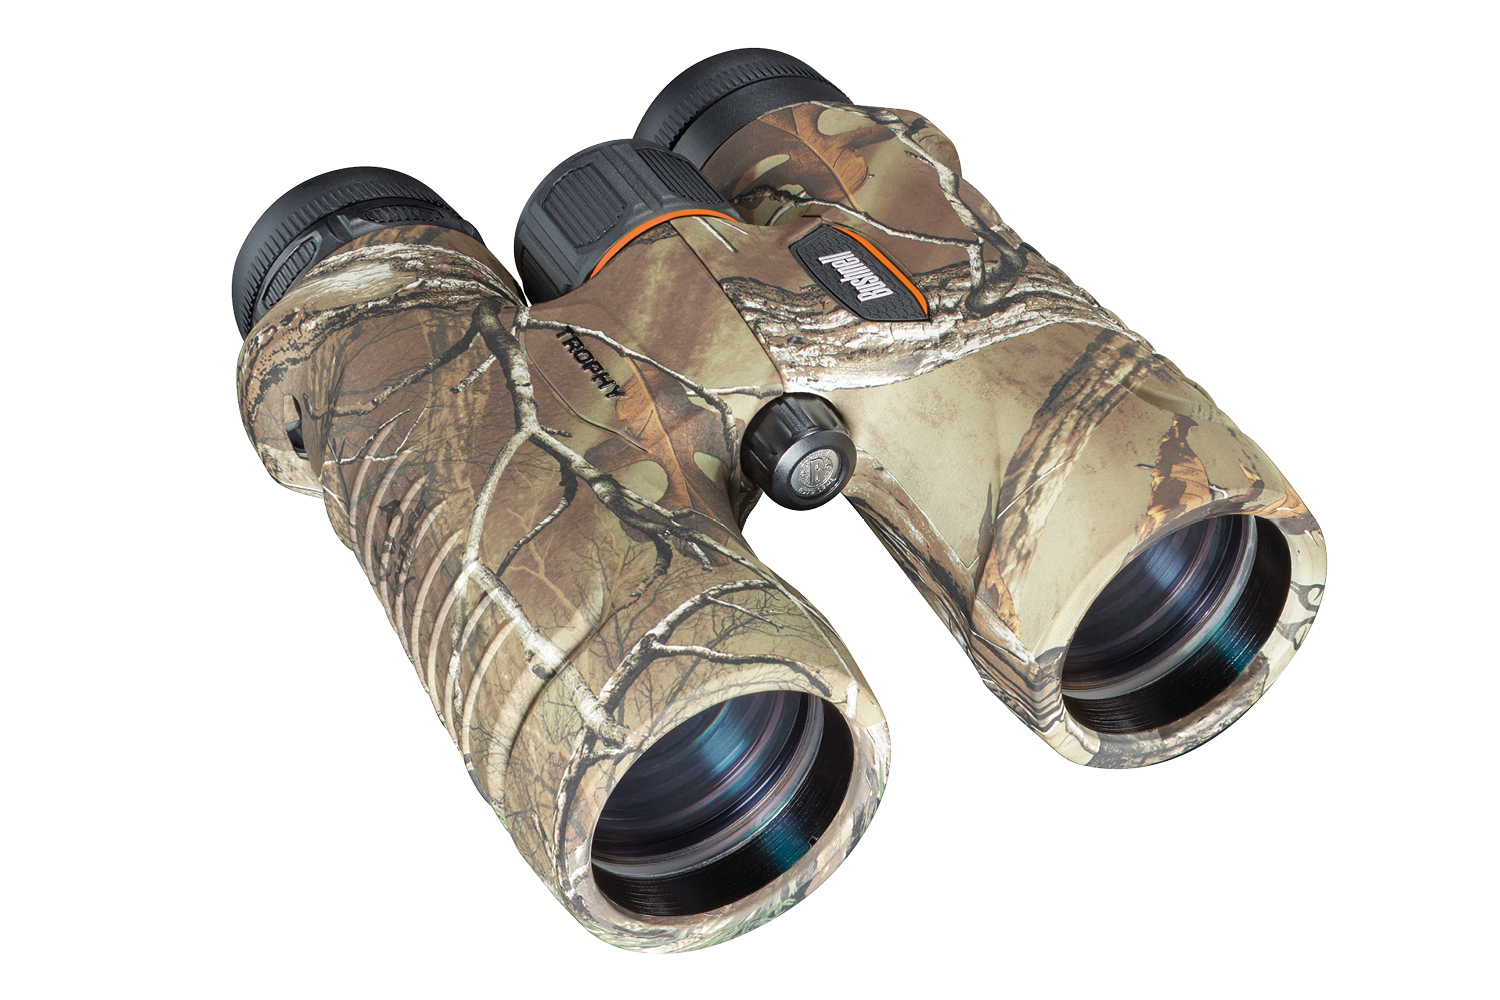 Бинокль Bushnell TROPHY 10x42 camo бинокль canon 10x42 l is wp